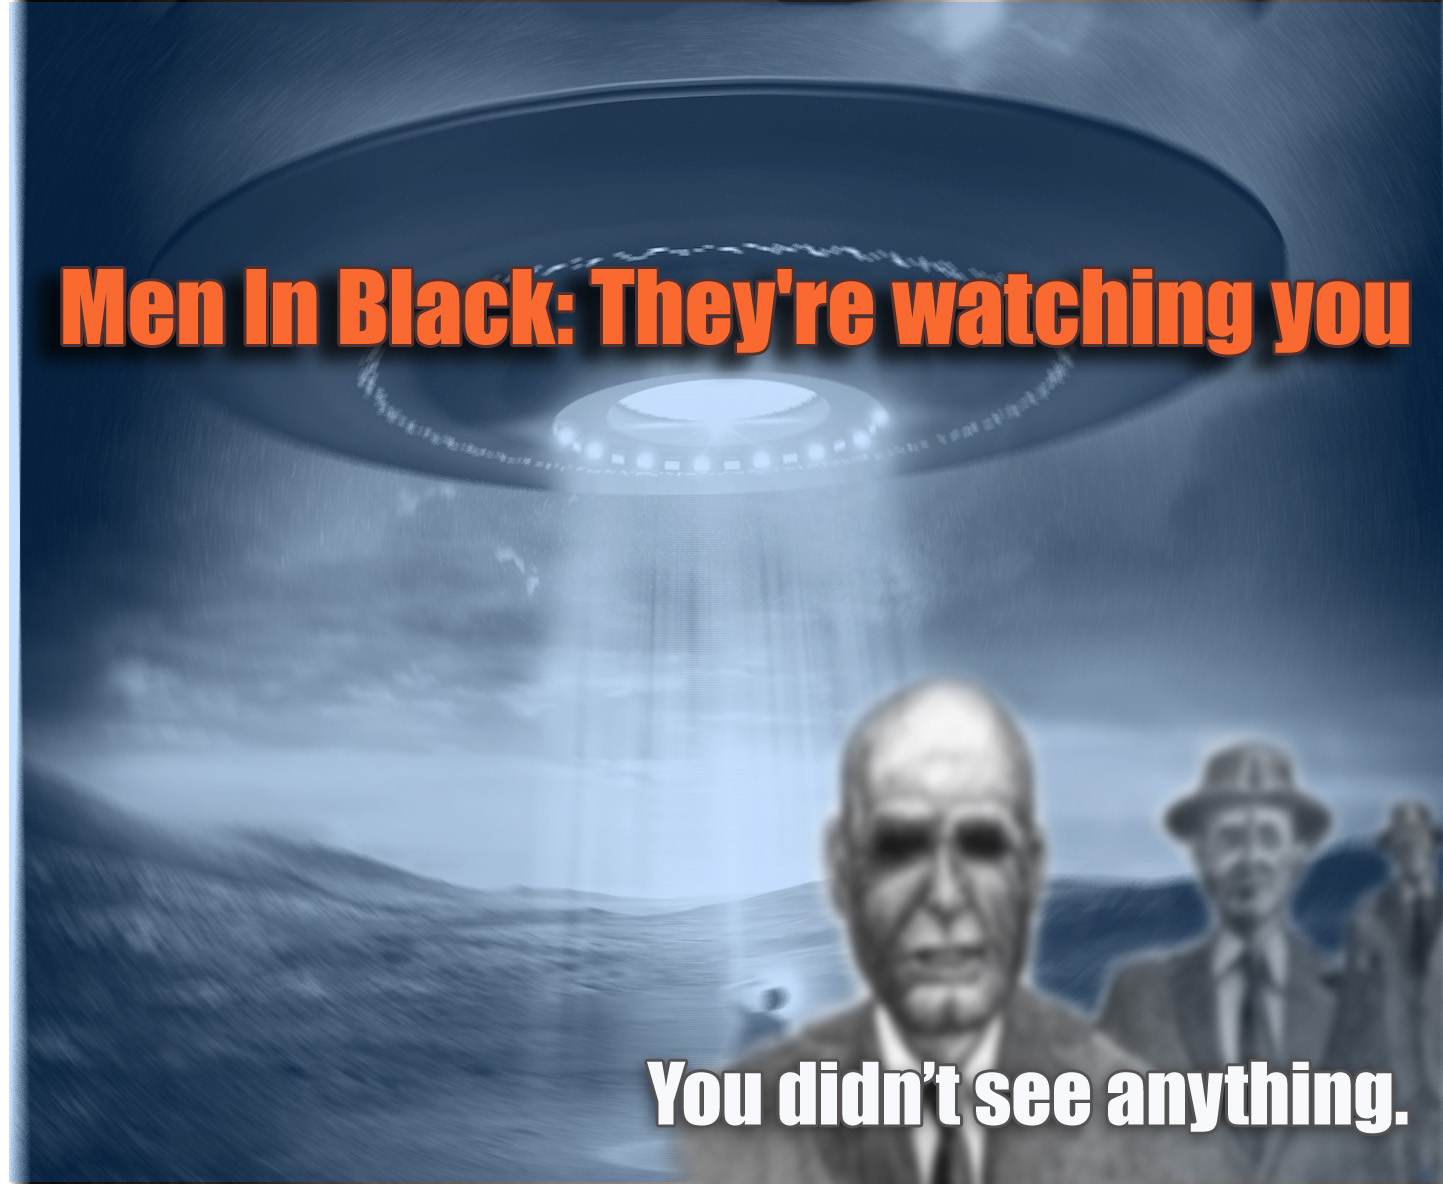 Men In Black: They're watching you